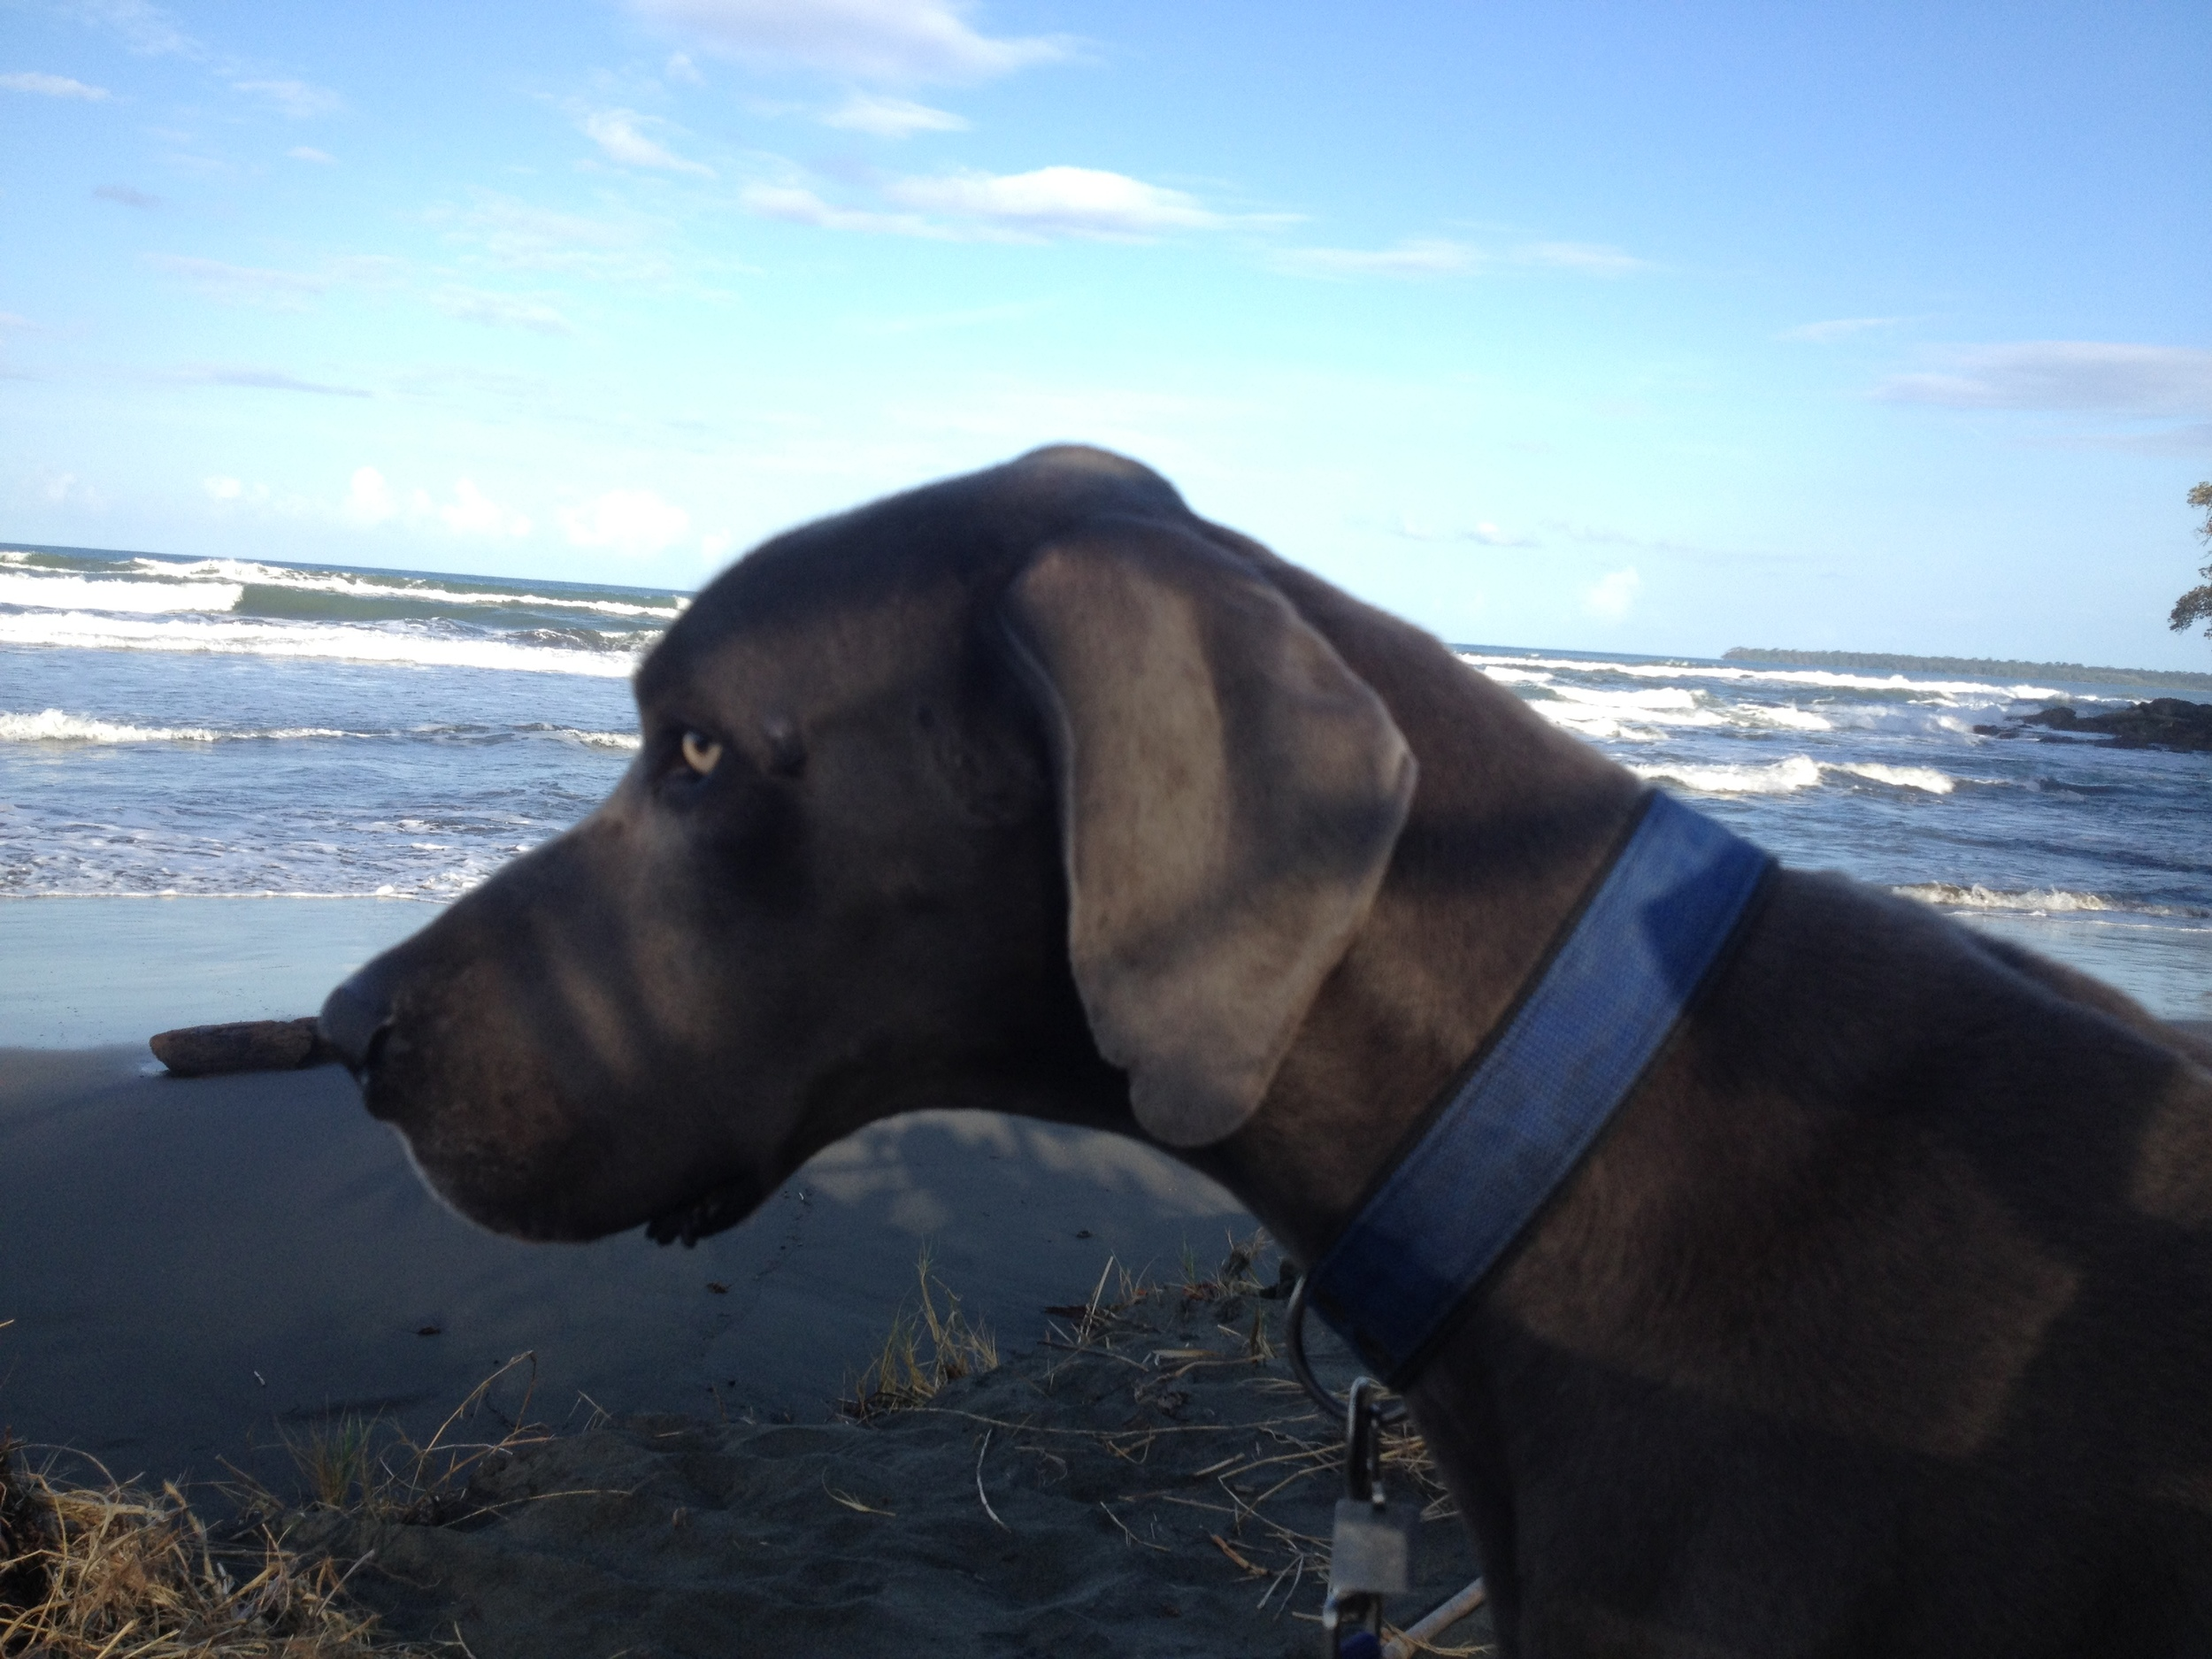 Blue gazing out to sea.